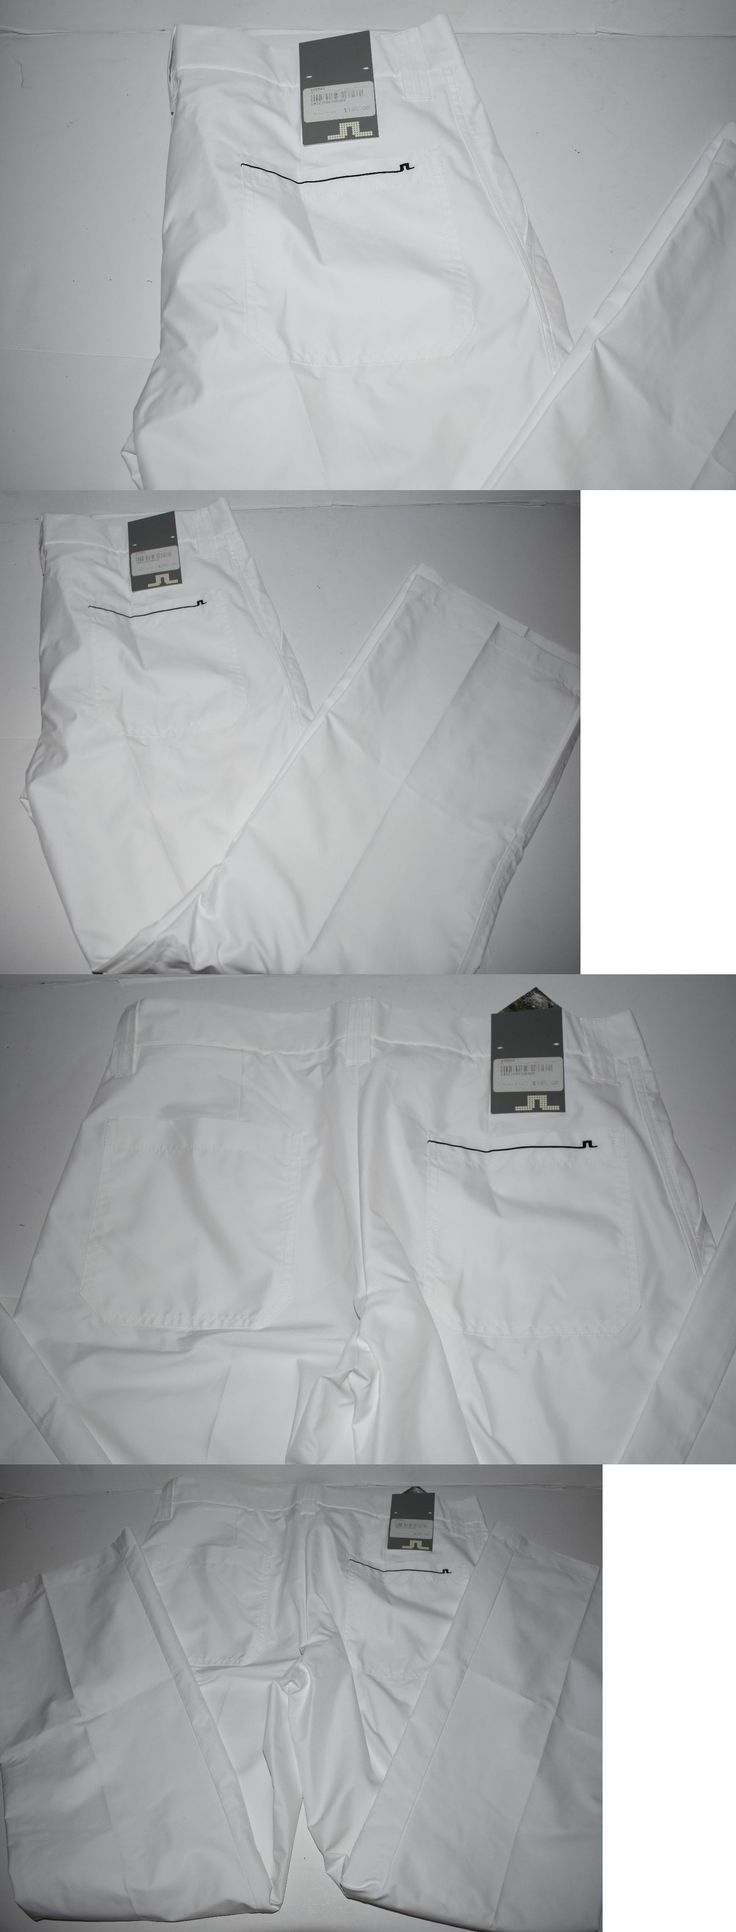 Other Golf Clothing 158939: Nwt J Lindeberg Troyan Micro Twill Pants White H2off Size 34X32 -> BUY IT NOW ONLY: $99 on eBay!